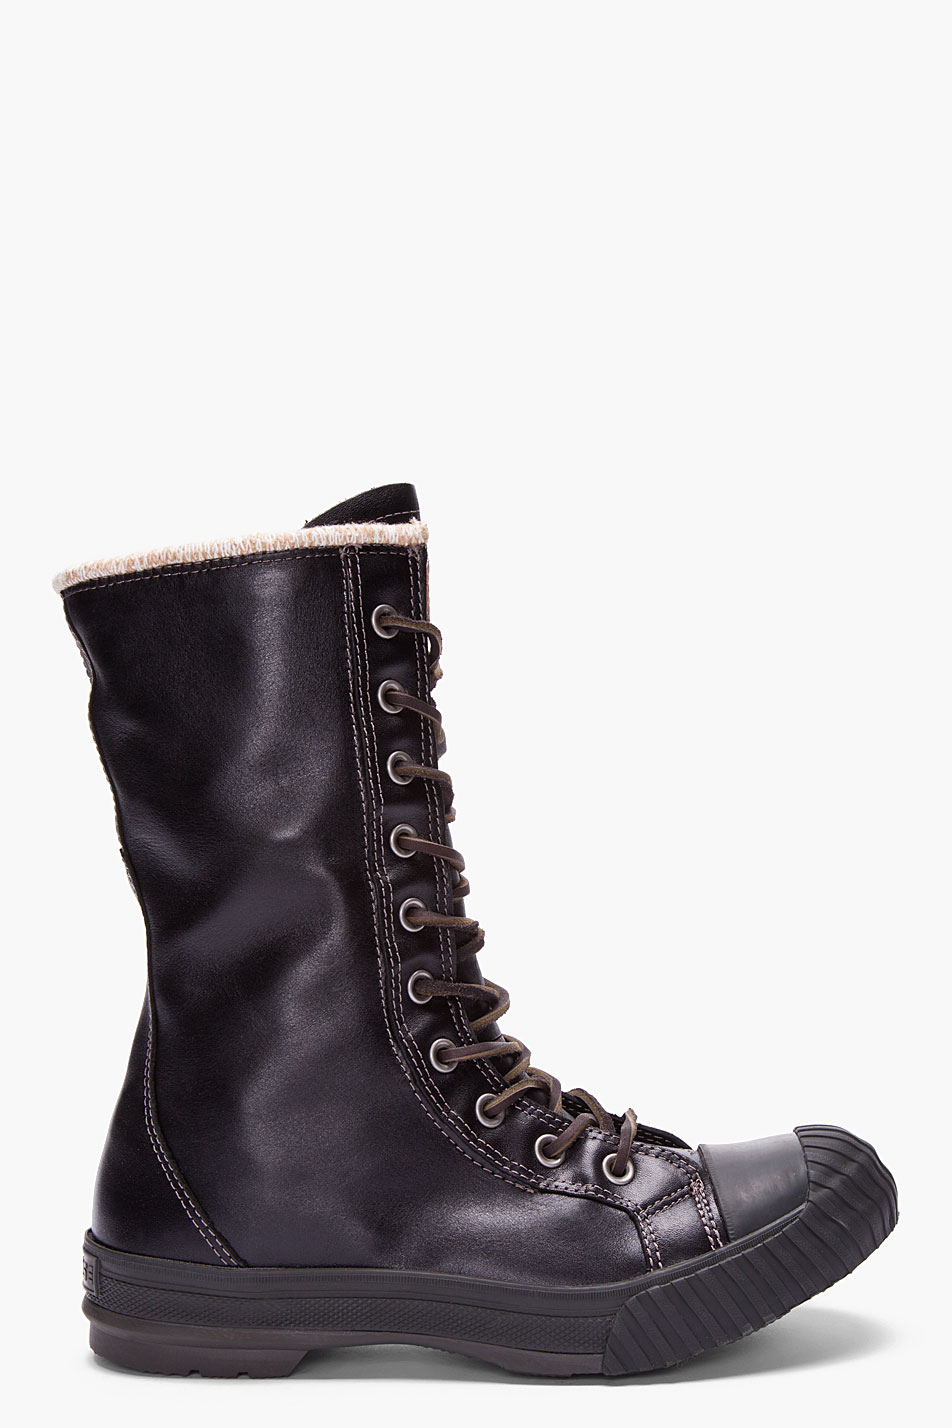 converse black leather chuck all boosey boots